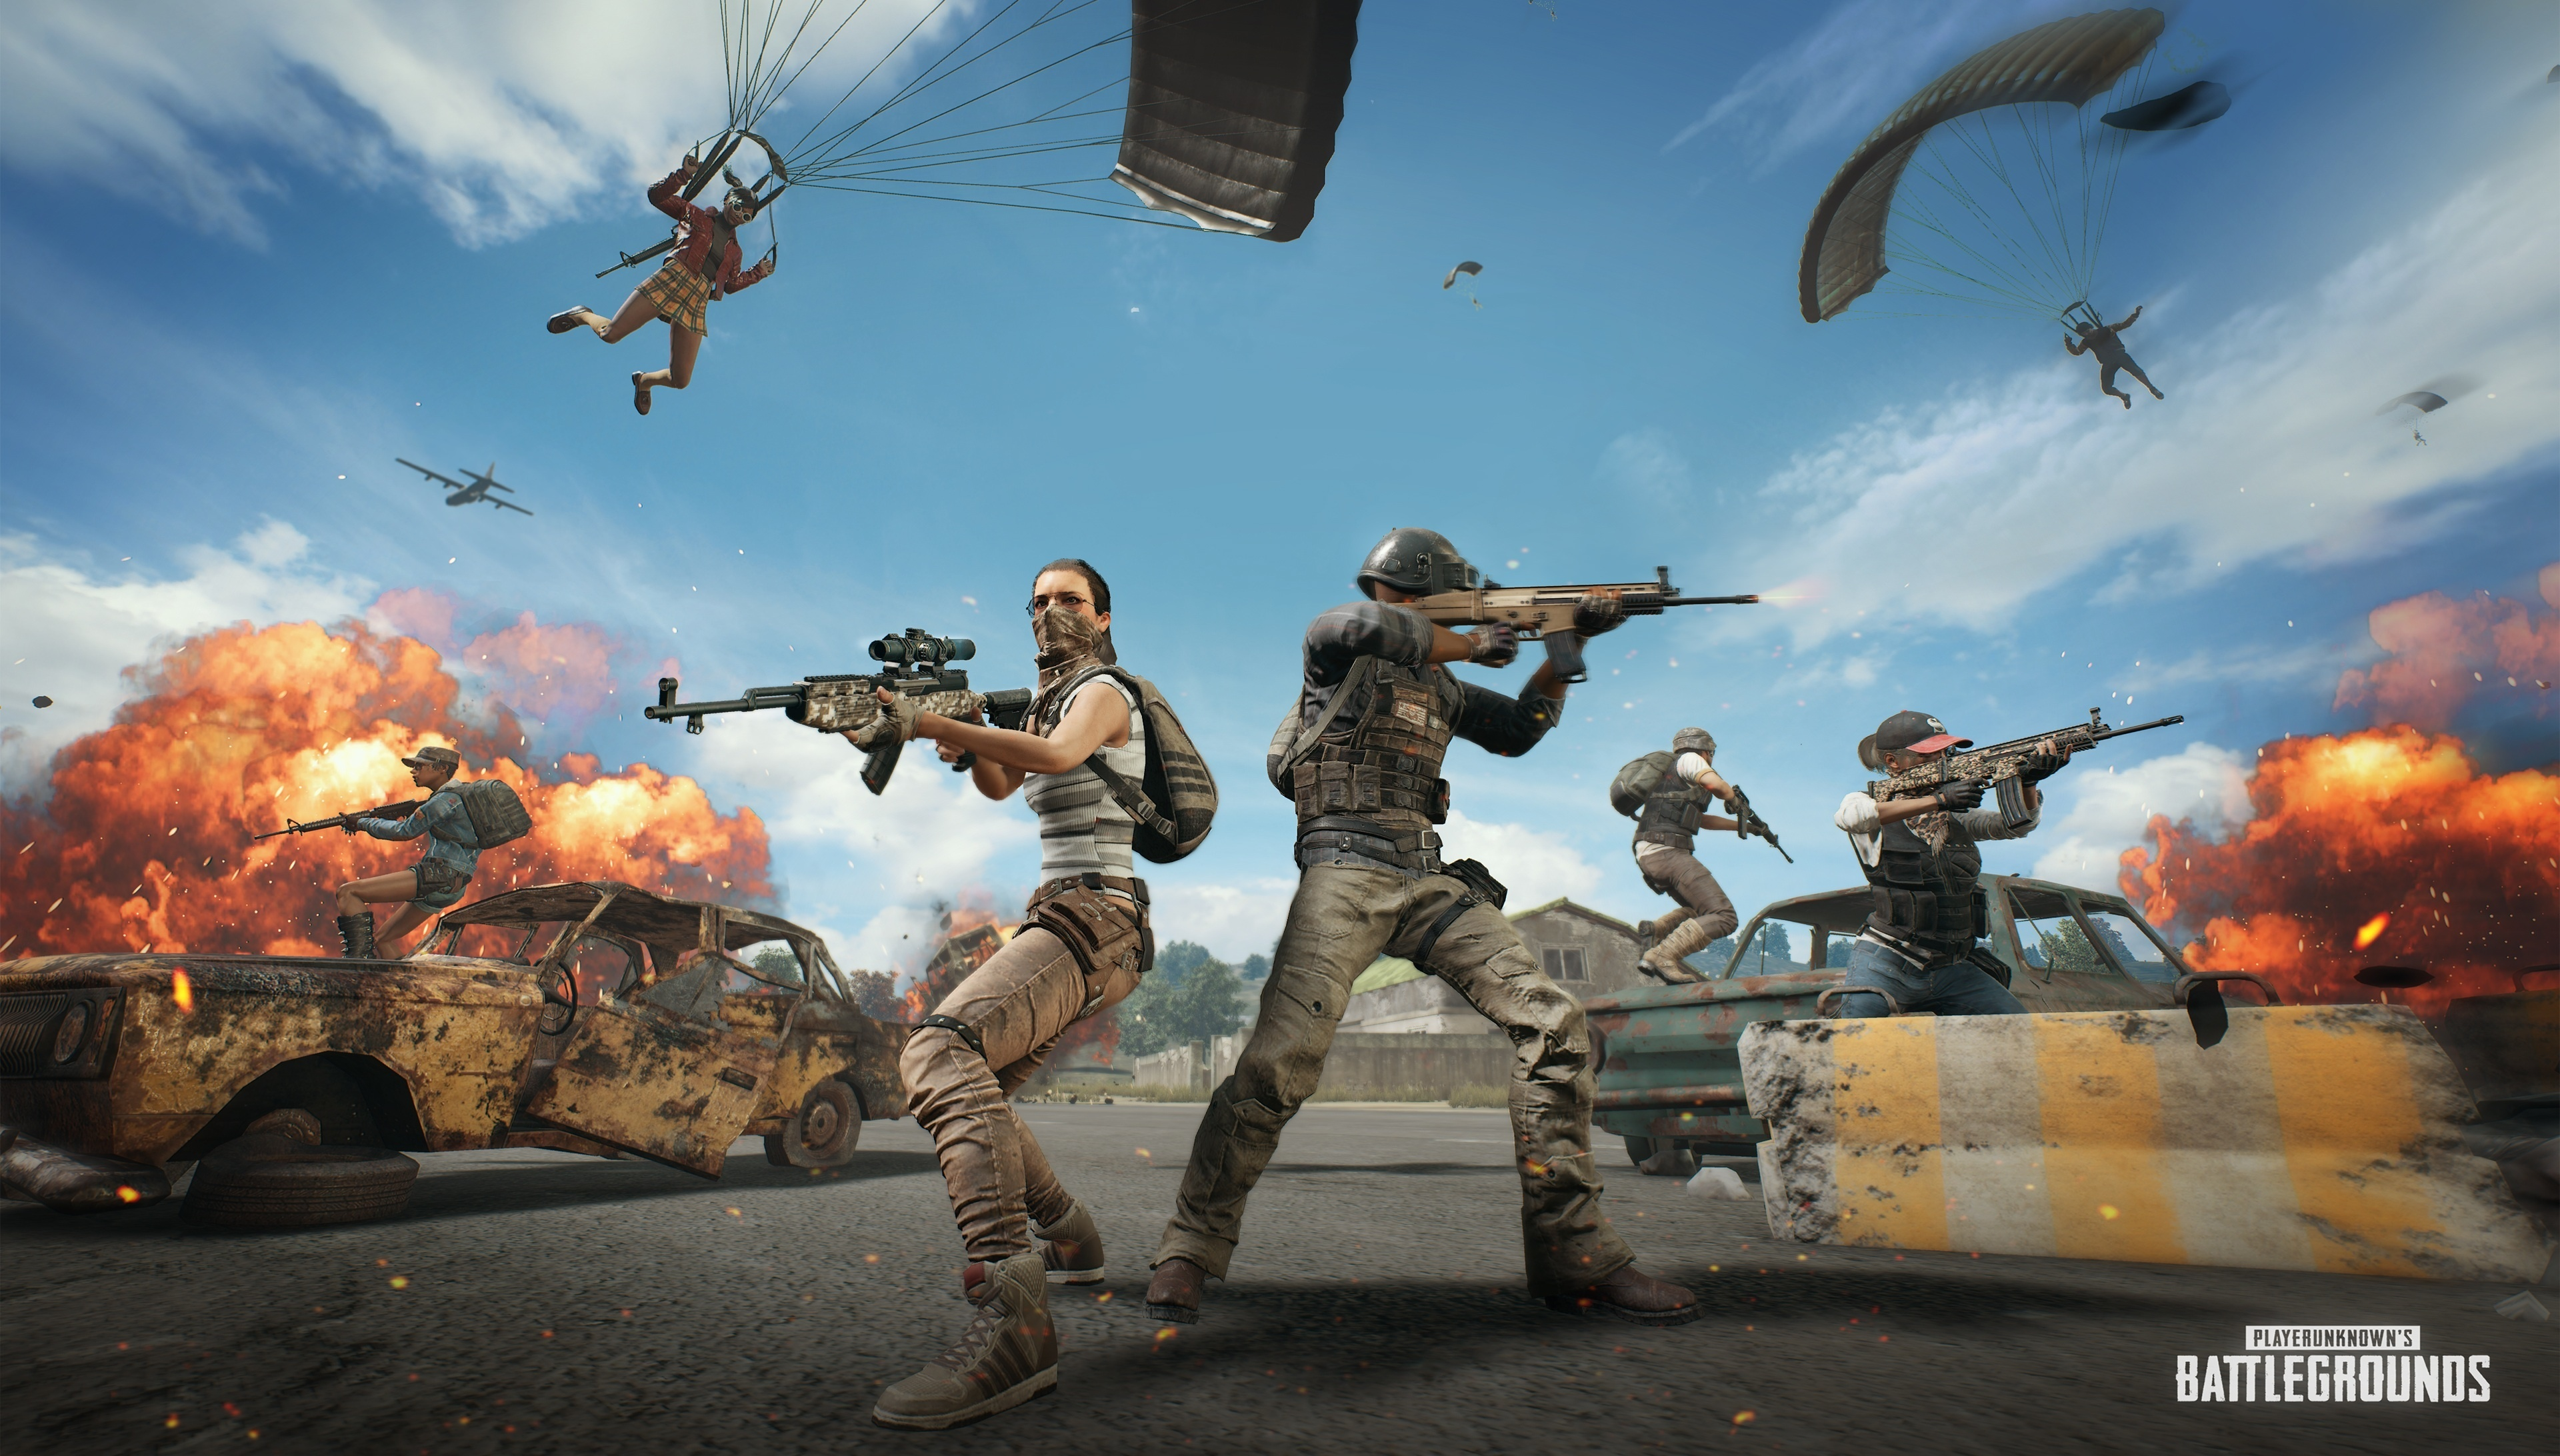 Cute Wallpapers For Girls Mobile Download 3840x2400 Wallpaper Playerunknown S Battlegrounds